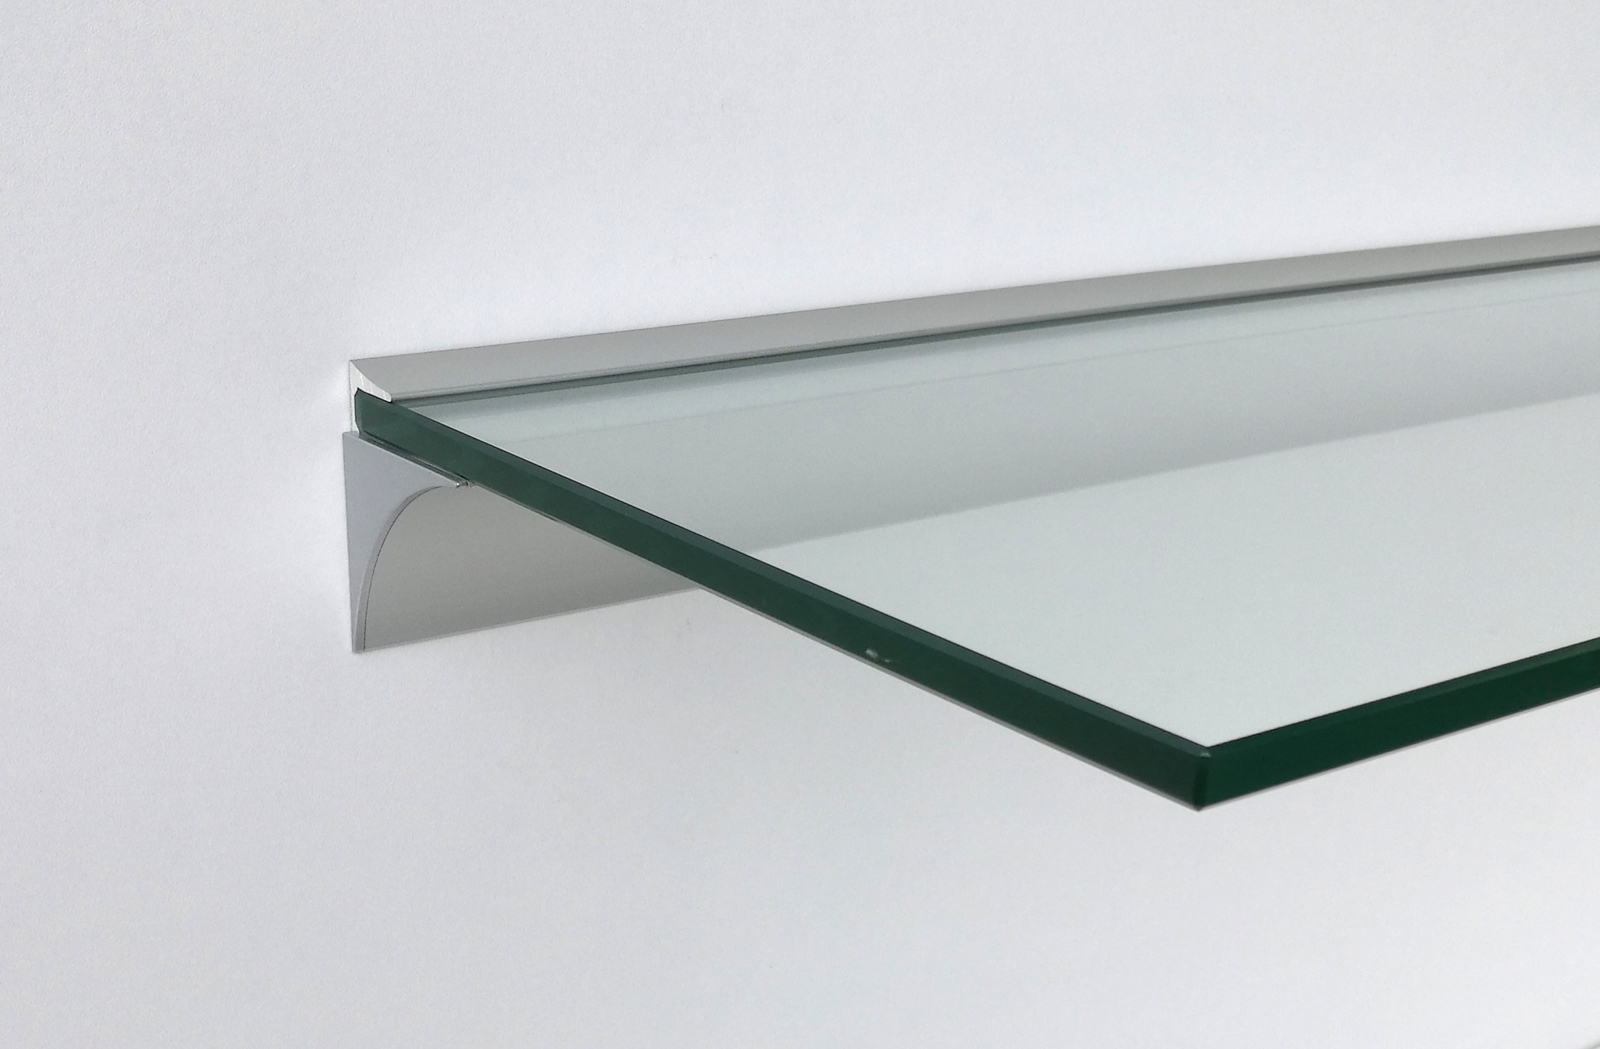 Glasregal Profil Glasregale 8mm Klarglas Esg Mit Wandprofil Regale4you Shop